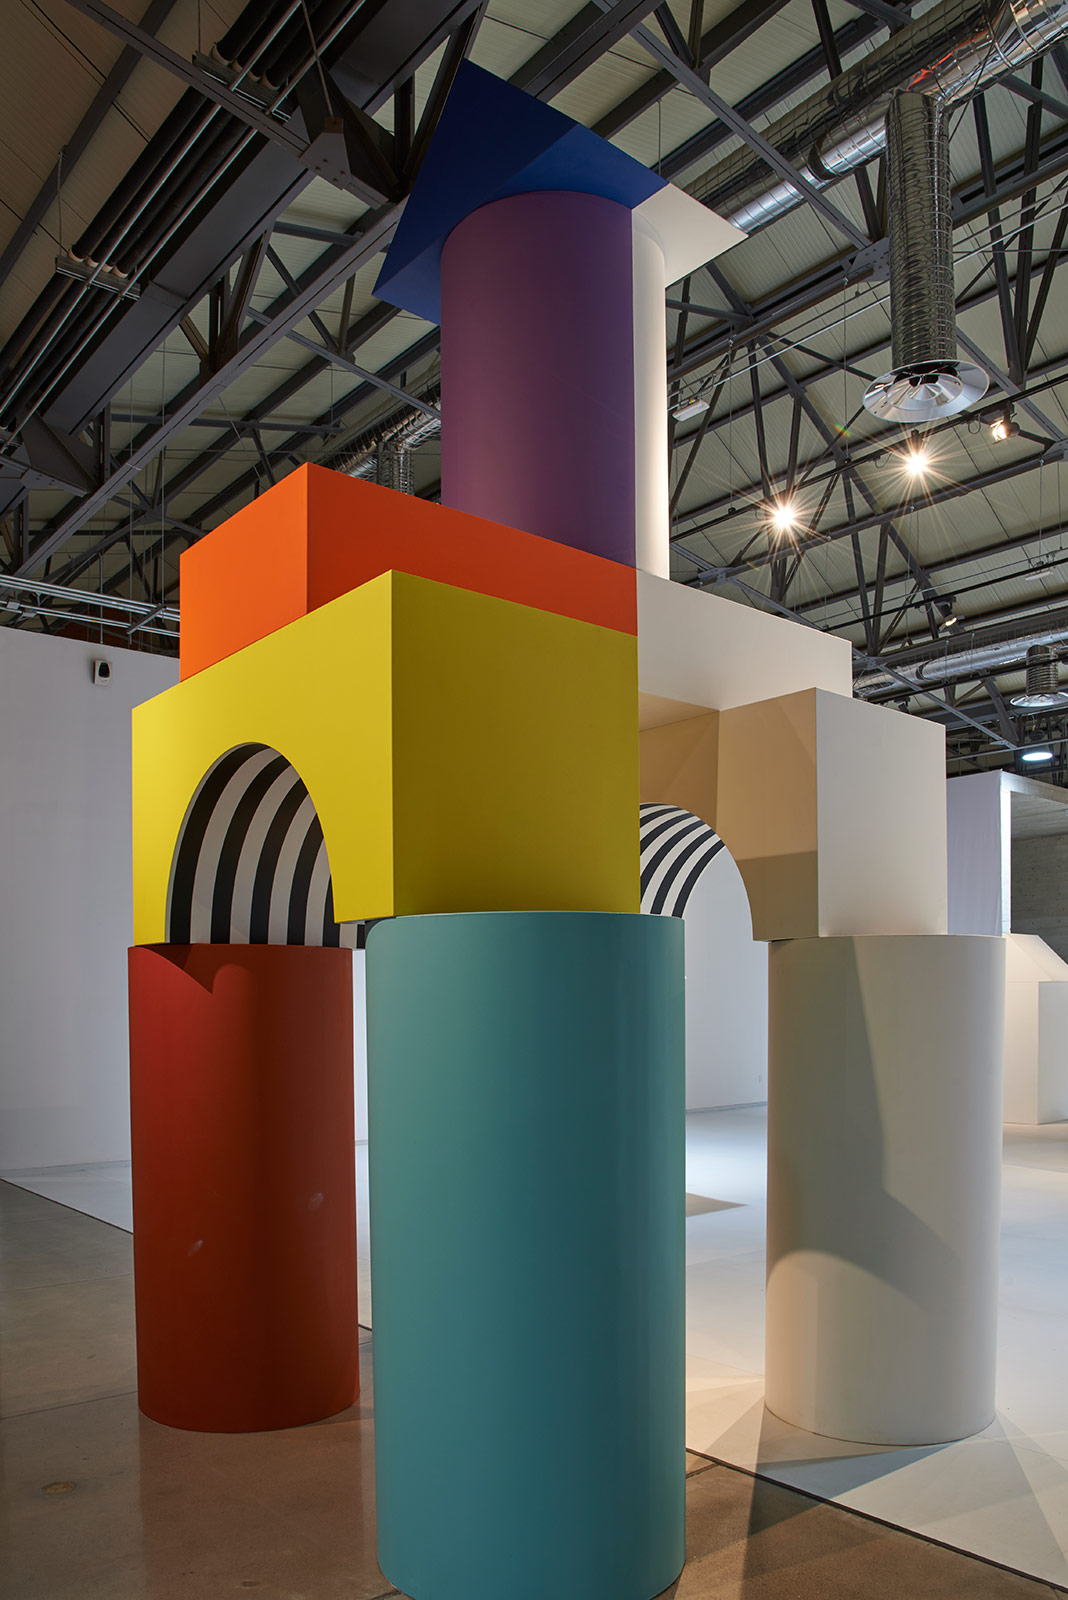 Daniel buren comme un jeu d enfant like child s play 5